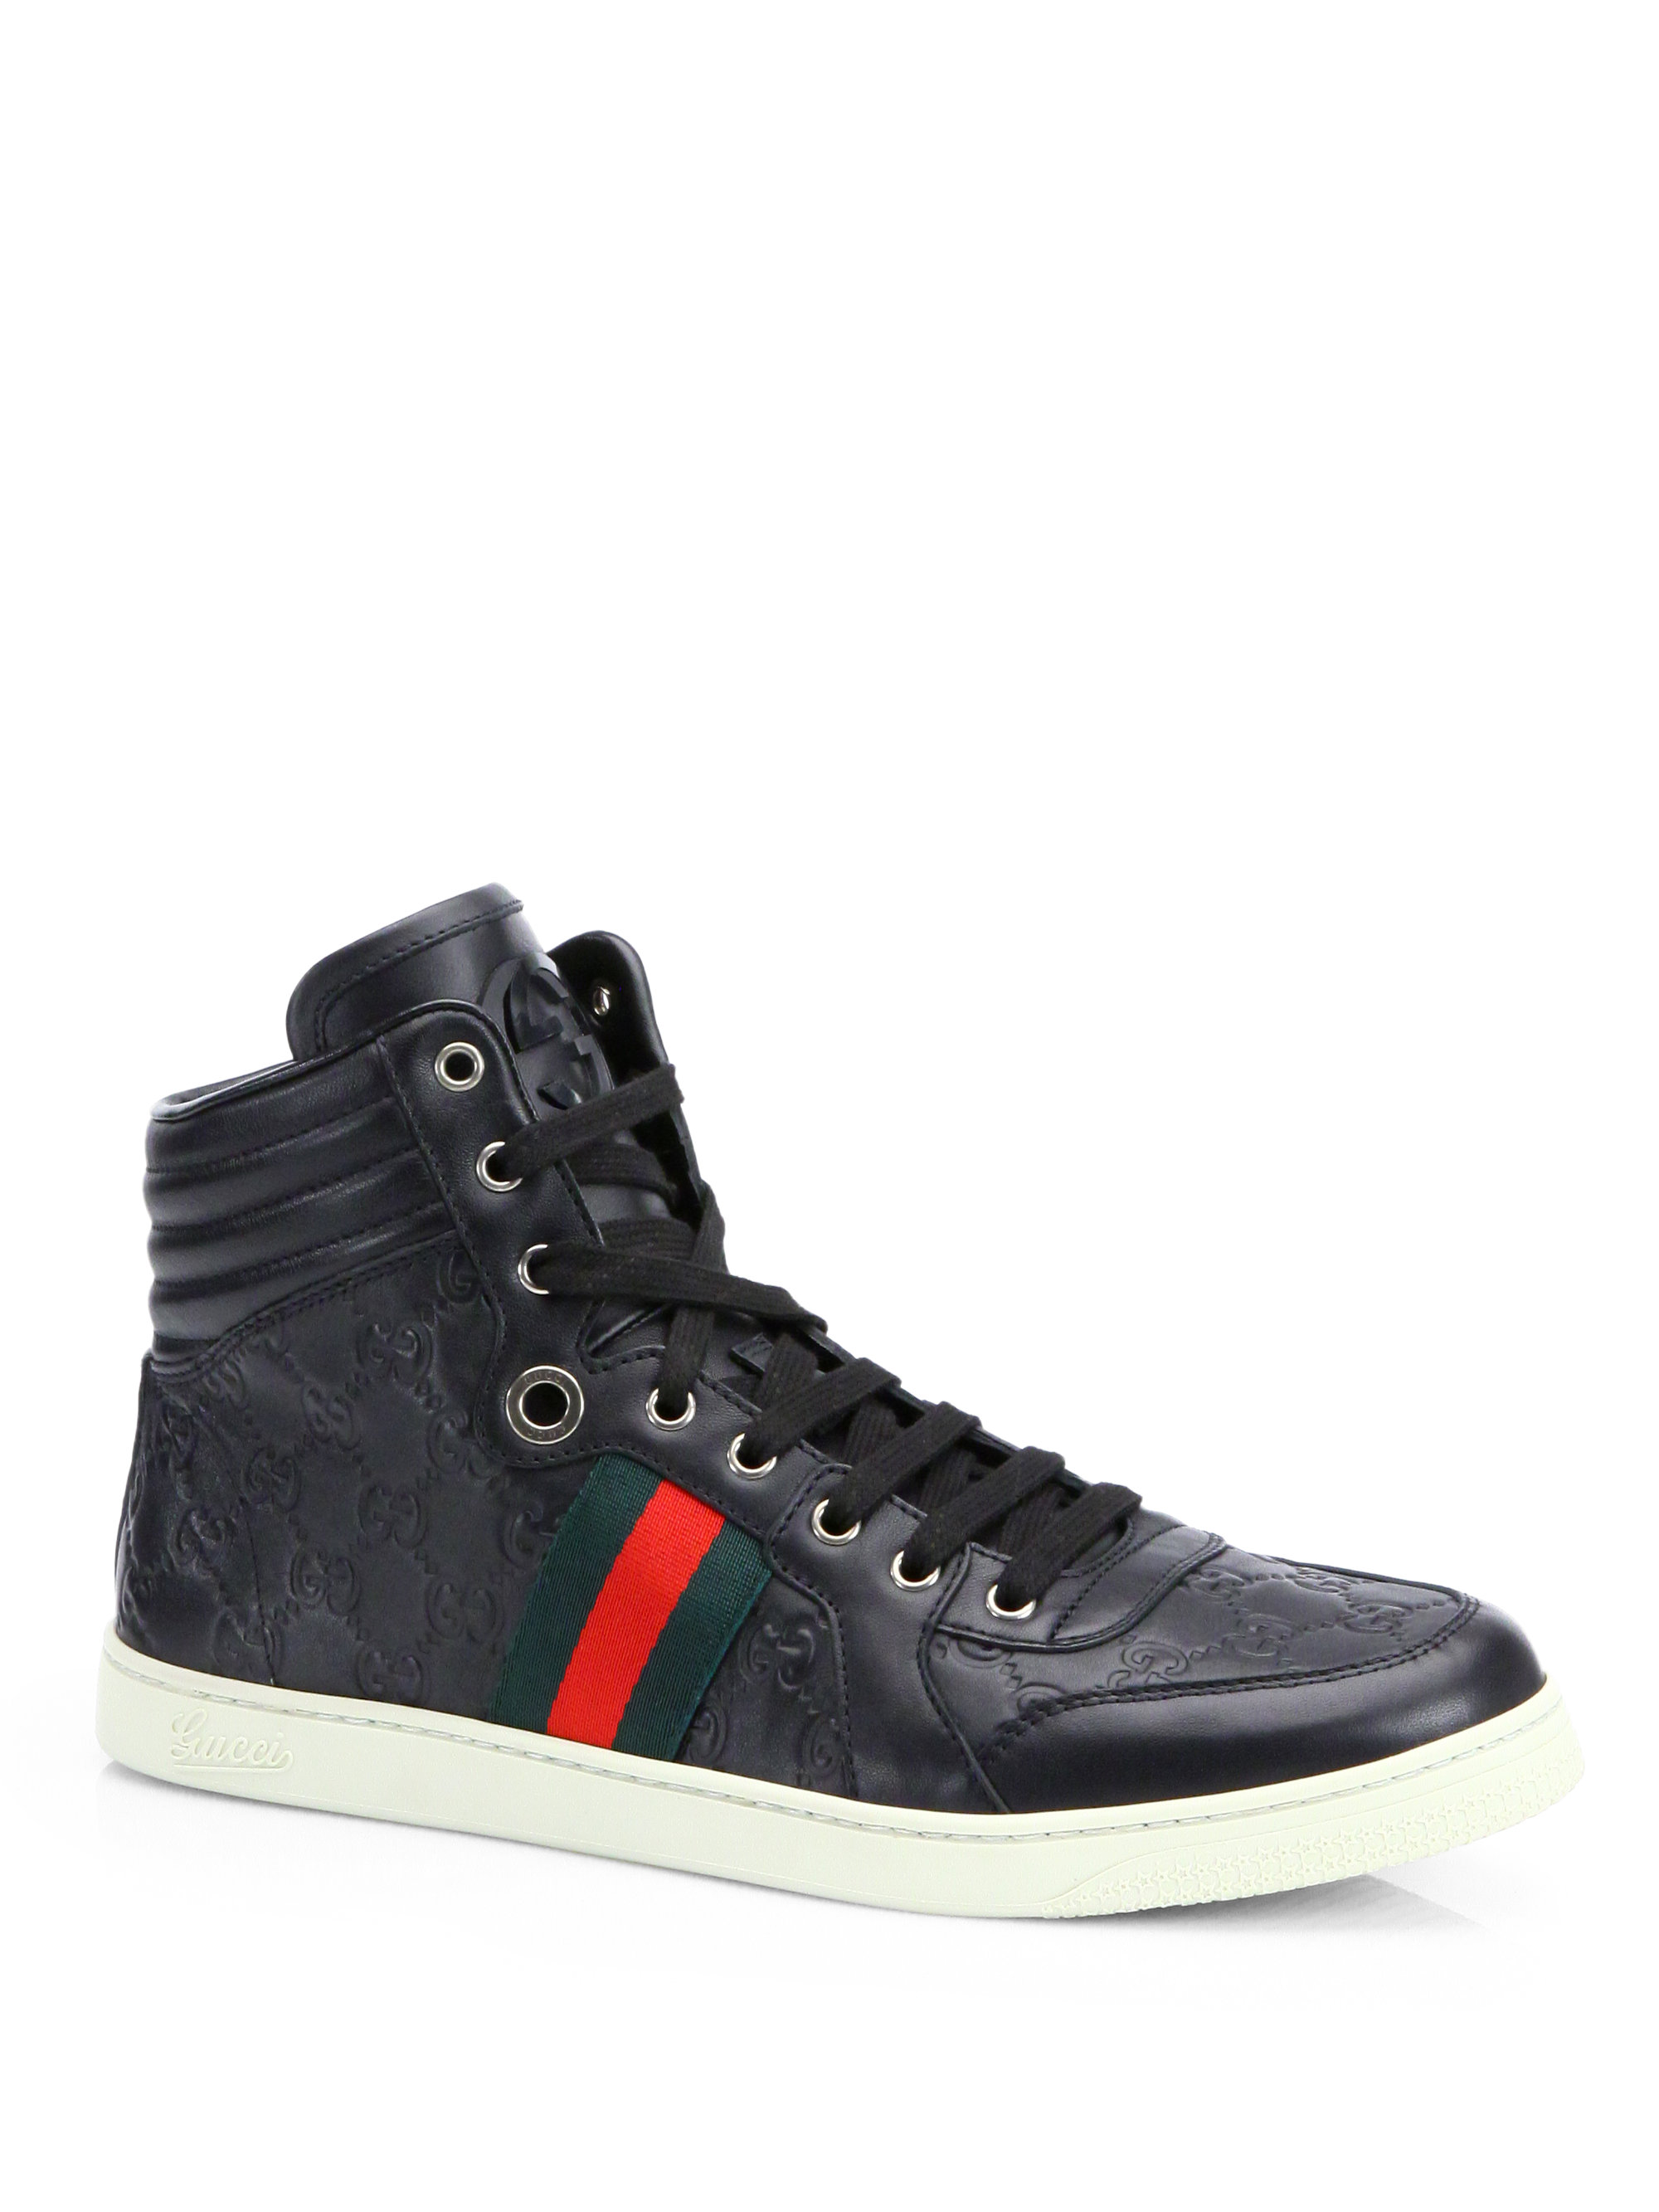 gucci ssima high top sneakers in black for men lyst. Black Bedroom Furniture Sets. Home Design Ideas